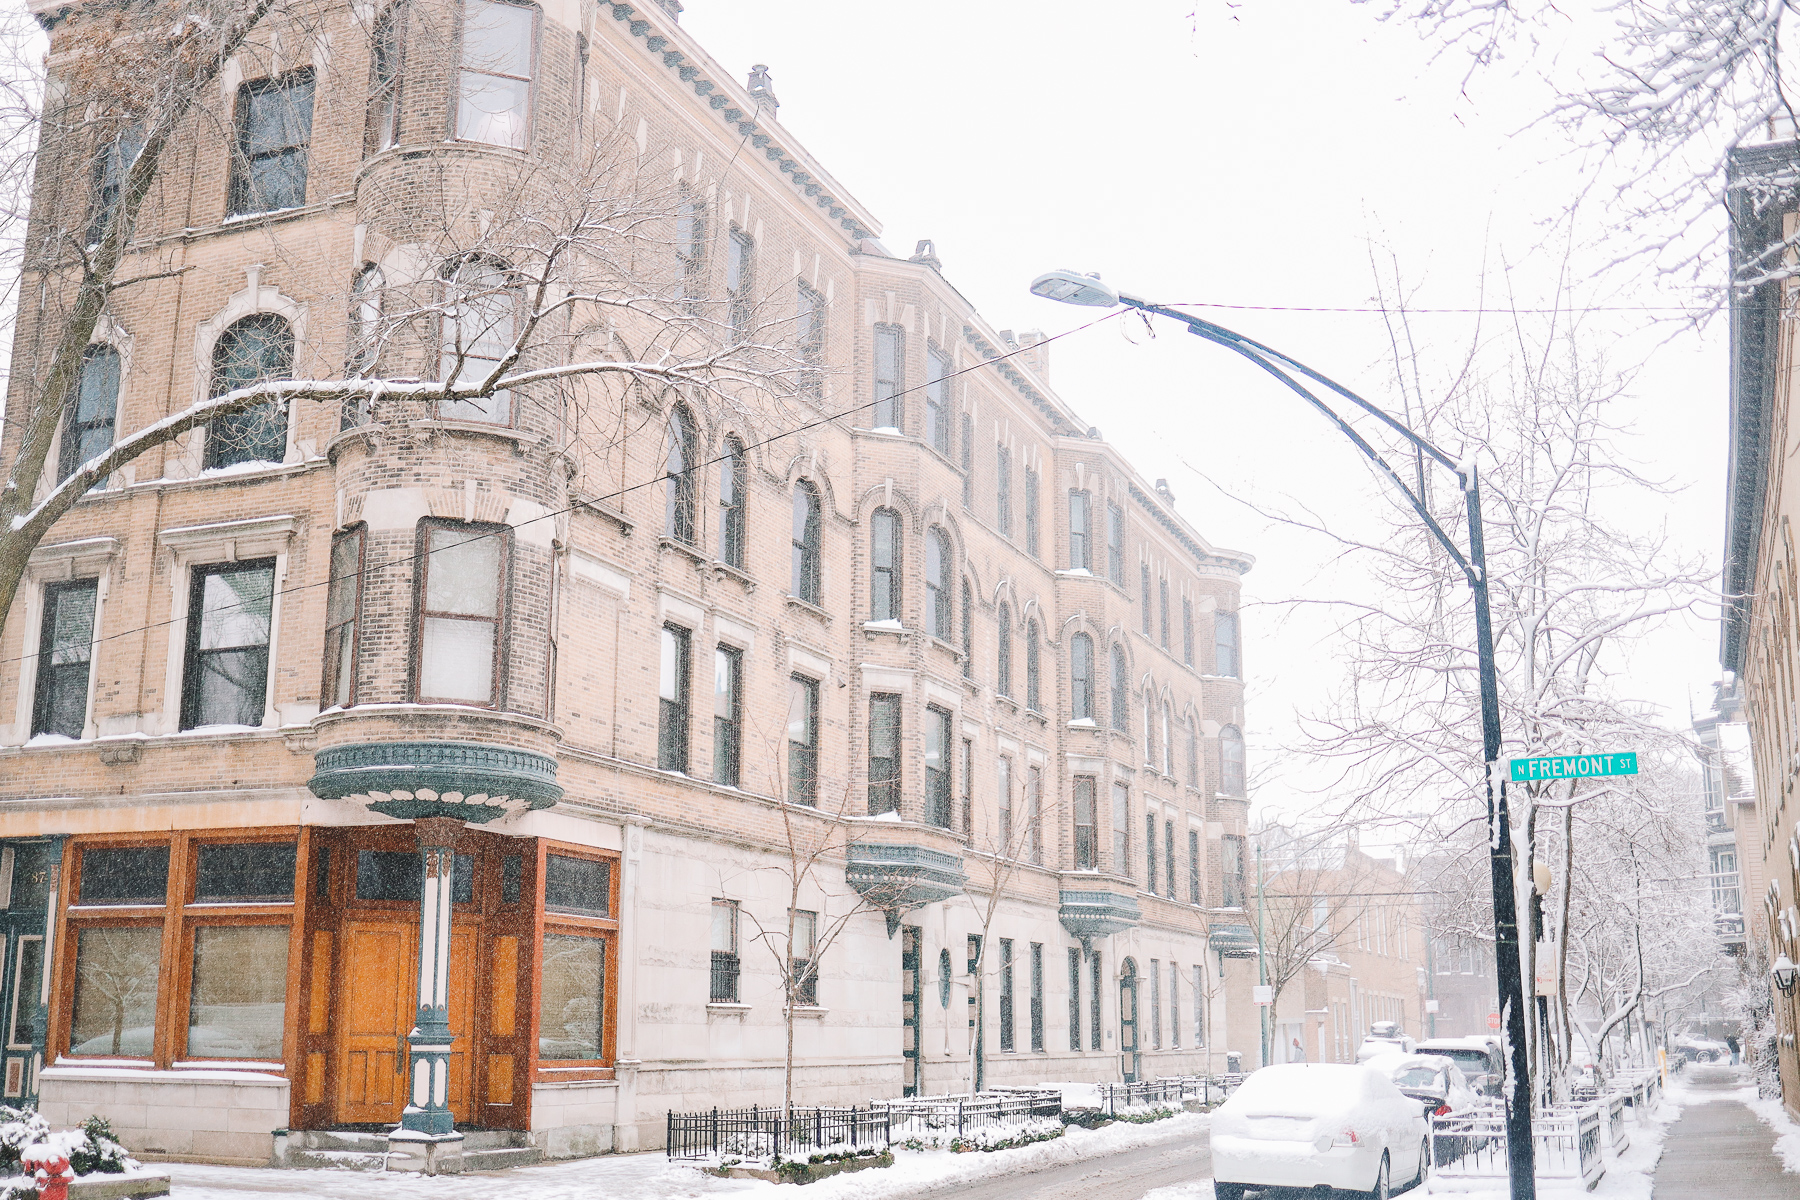 chicago houses and street winter snow